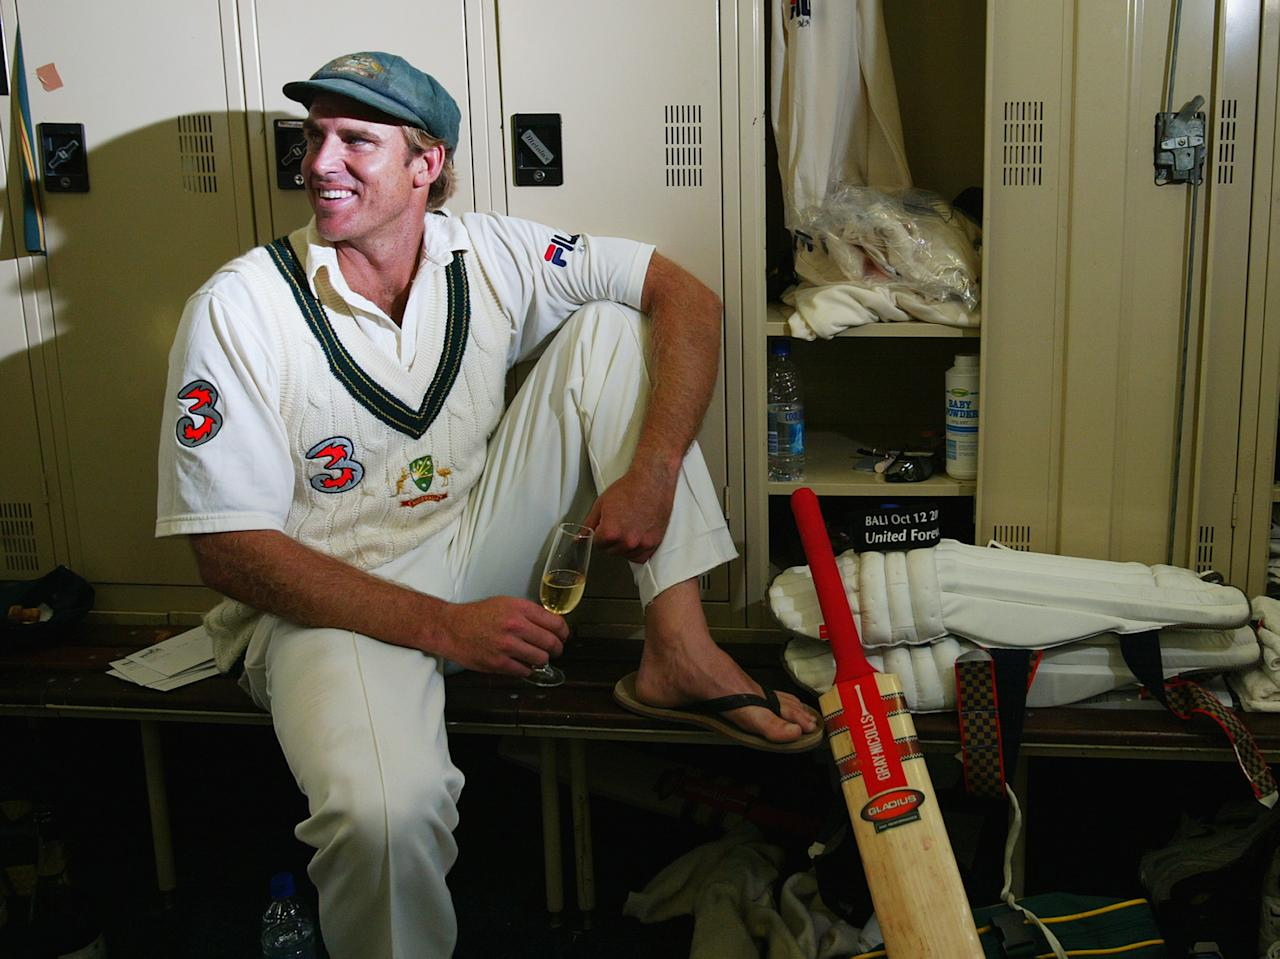 PERTH, AUSTRALIA - OCTOBER 10:  Matthew Hayden of Australia relaxes in the rooms after scoring 380 to break Brian Lara of The West Indies world record of 375 during day two of the First Test between Australia and Zimbabwe played at the WACA Ground on October 10, 2003 in Perth, Australia. (Photo by Hamish Blair/Getty Images)